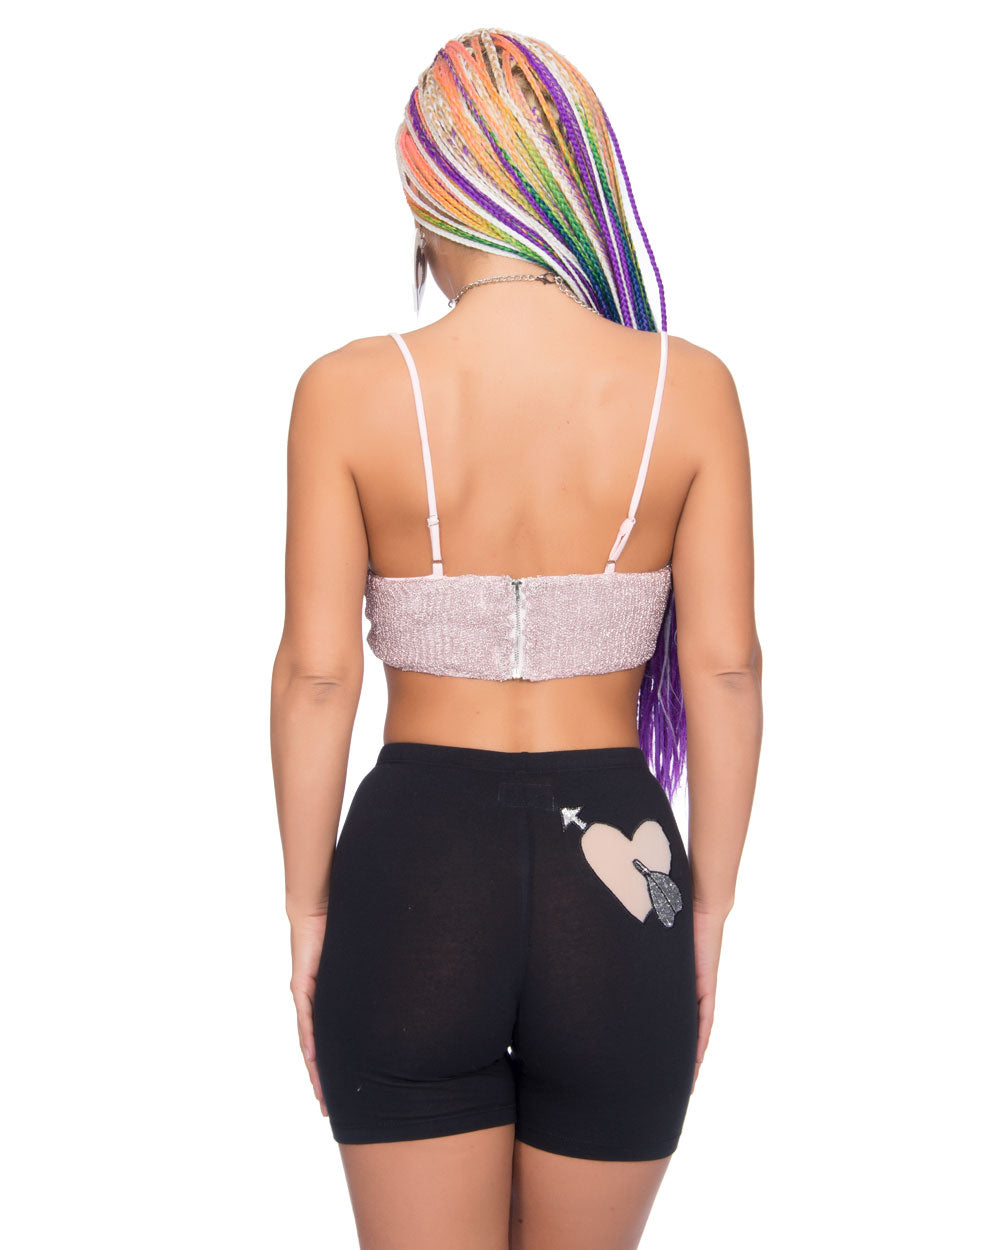 VIOLET DAWN CROP TOP - Eros Mortis